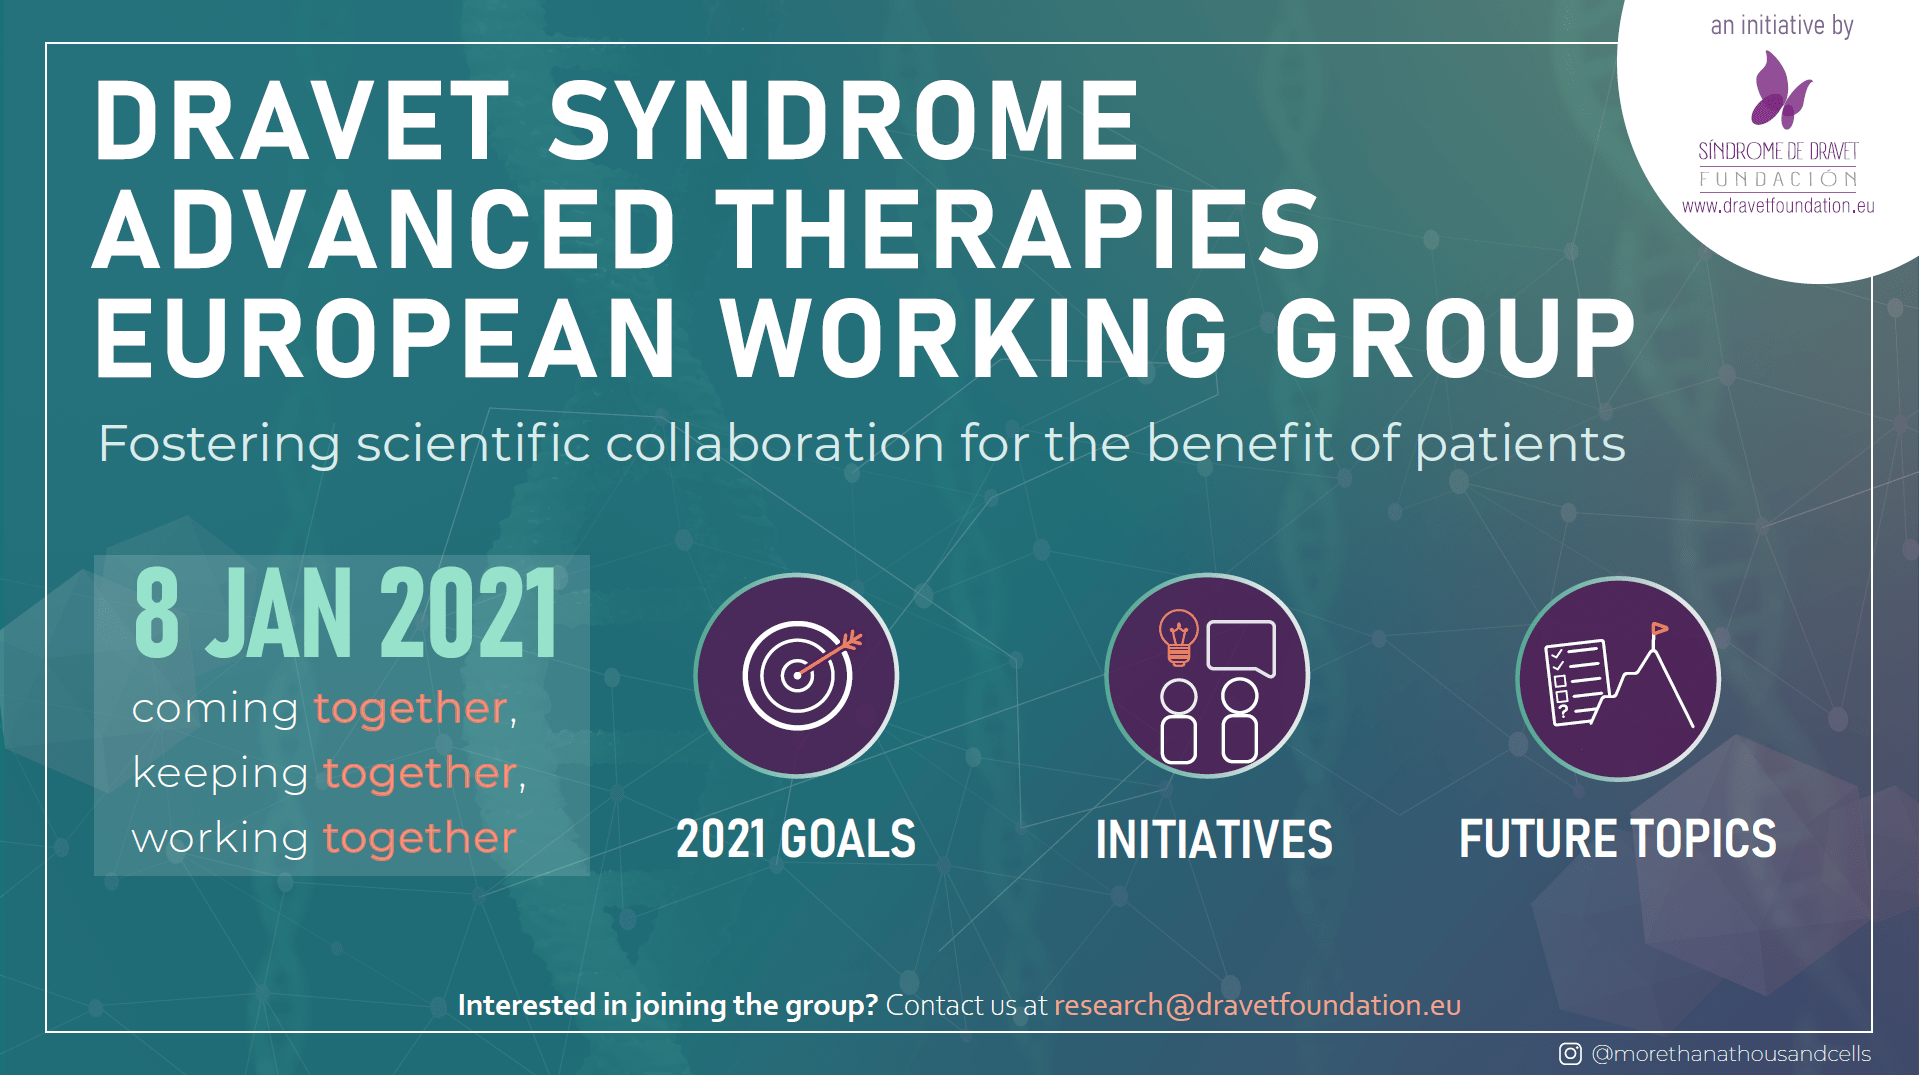 Dravet Syndrome Advanced Therapies European Working Group meeting